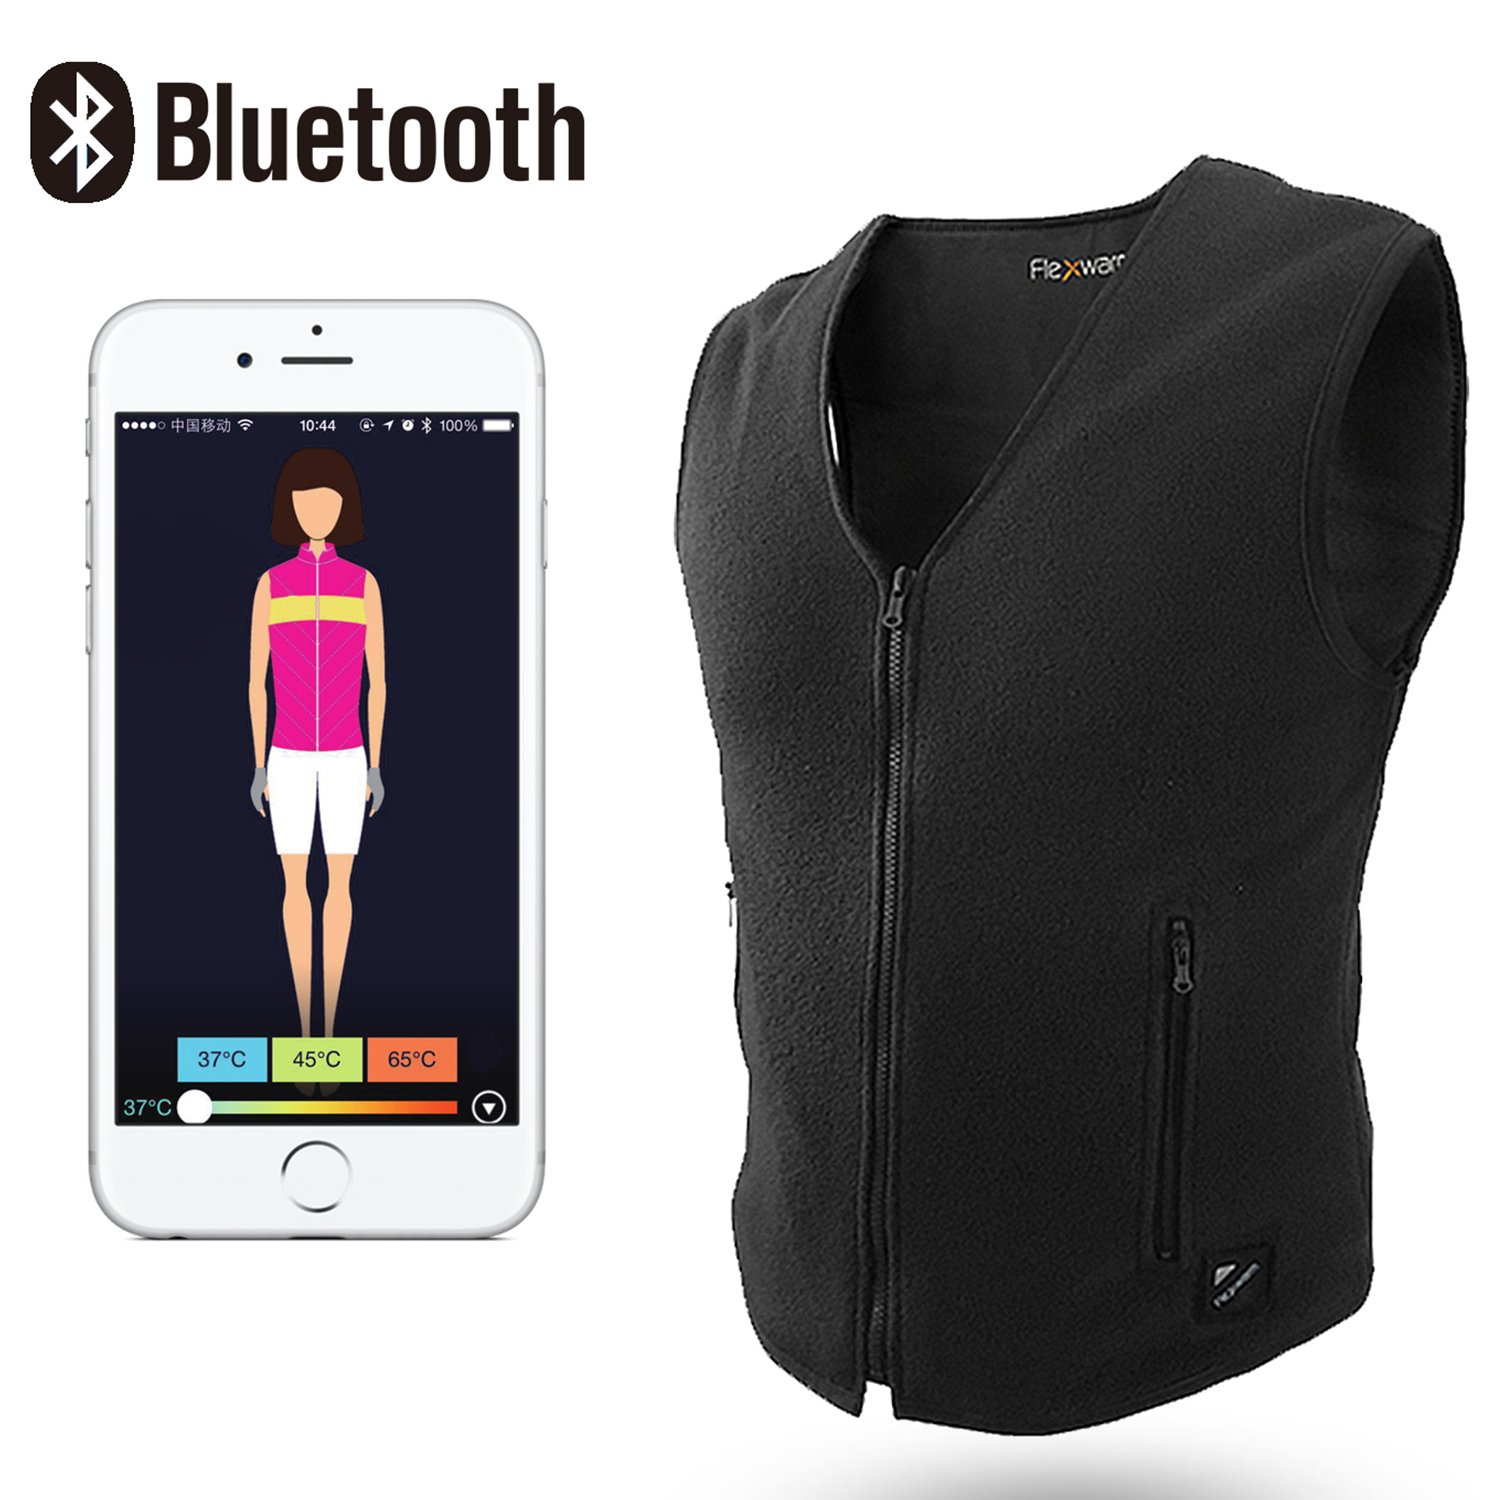 Beautprincess Women's Therapy Insulated Heated Down Vest Electric Heating Clothes Far Infrared with Smartphone Bluetooth App Control Large by Beautprincess